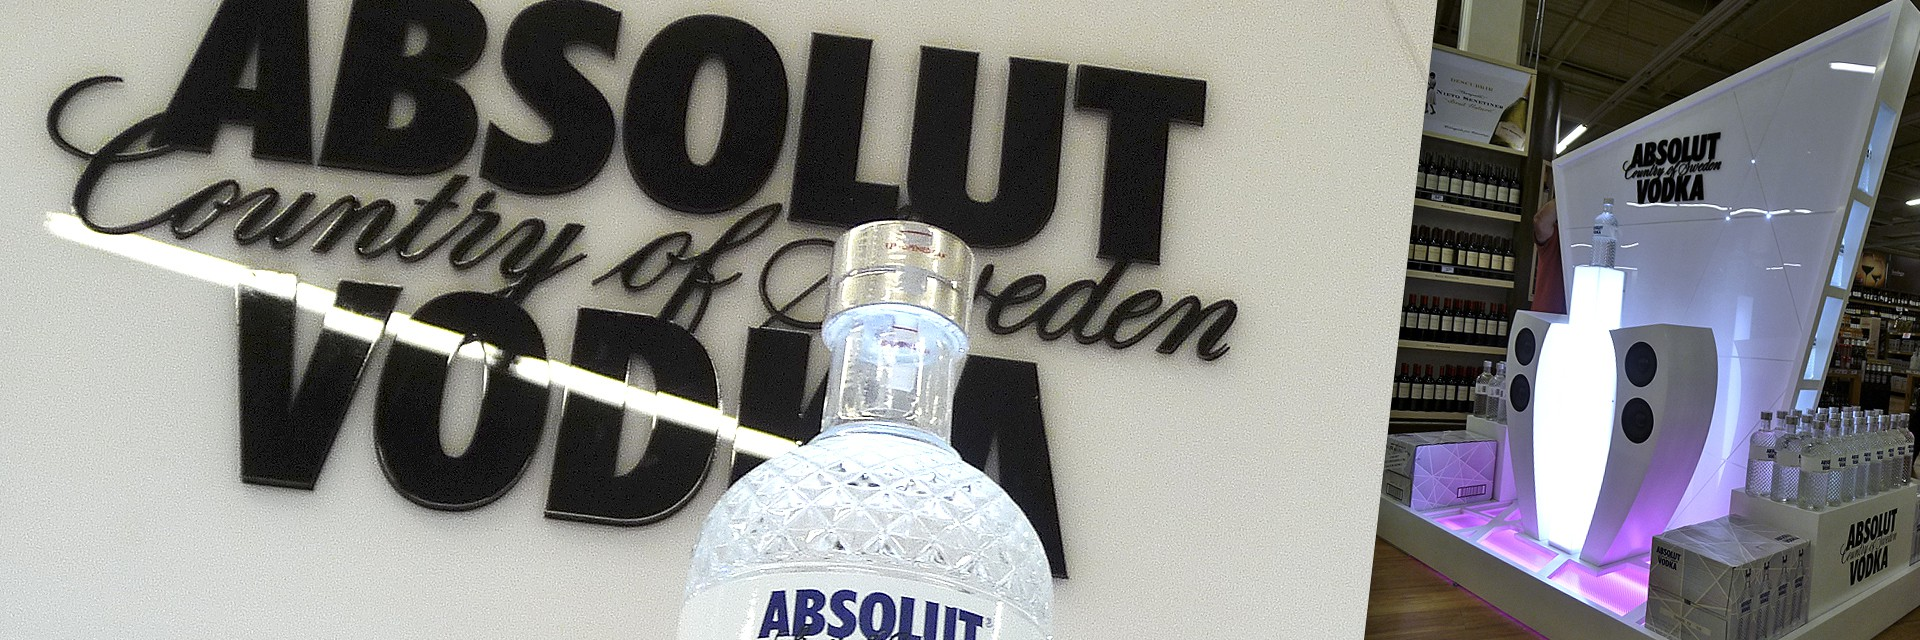 CAMPAÑA ABSOLUT GLIMMER